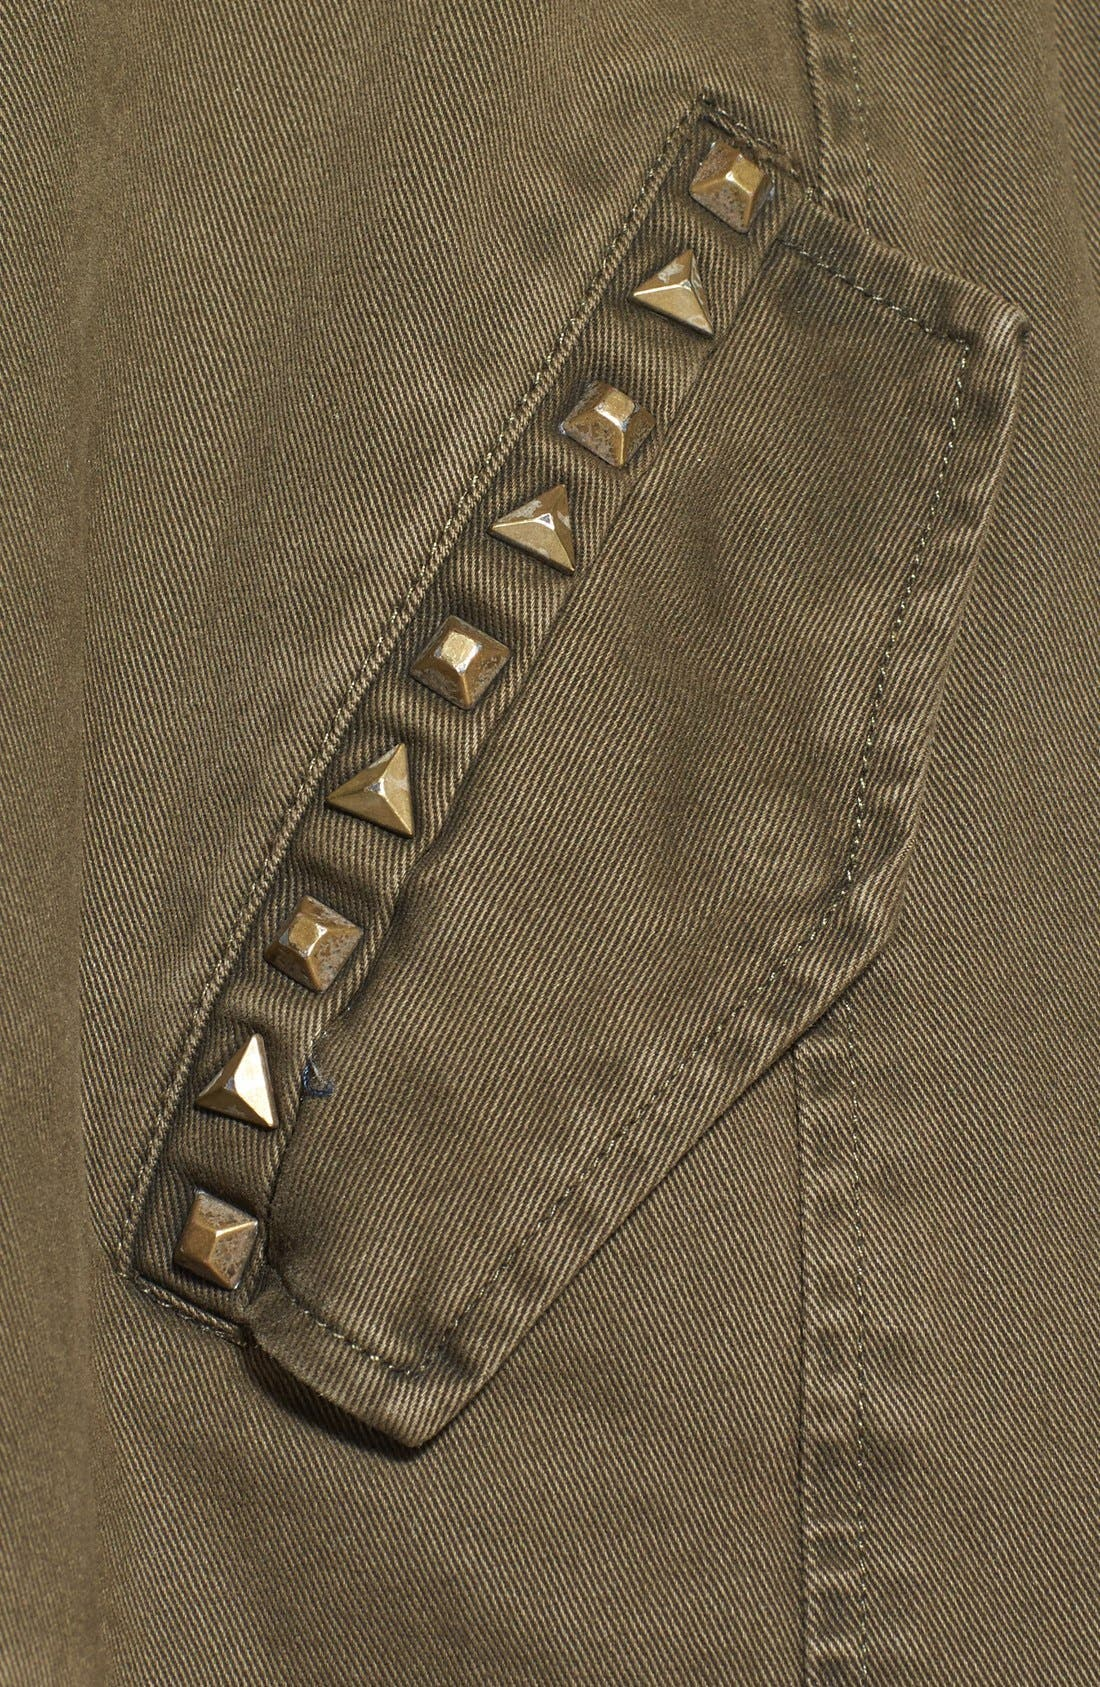 Alternate Image 3  - GUESS Studded Army Anorak